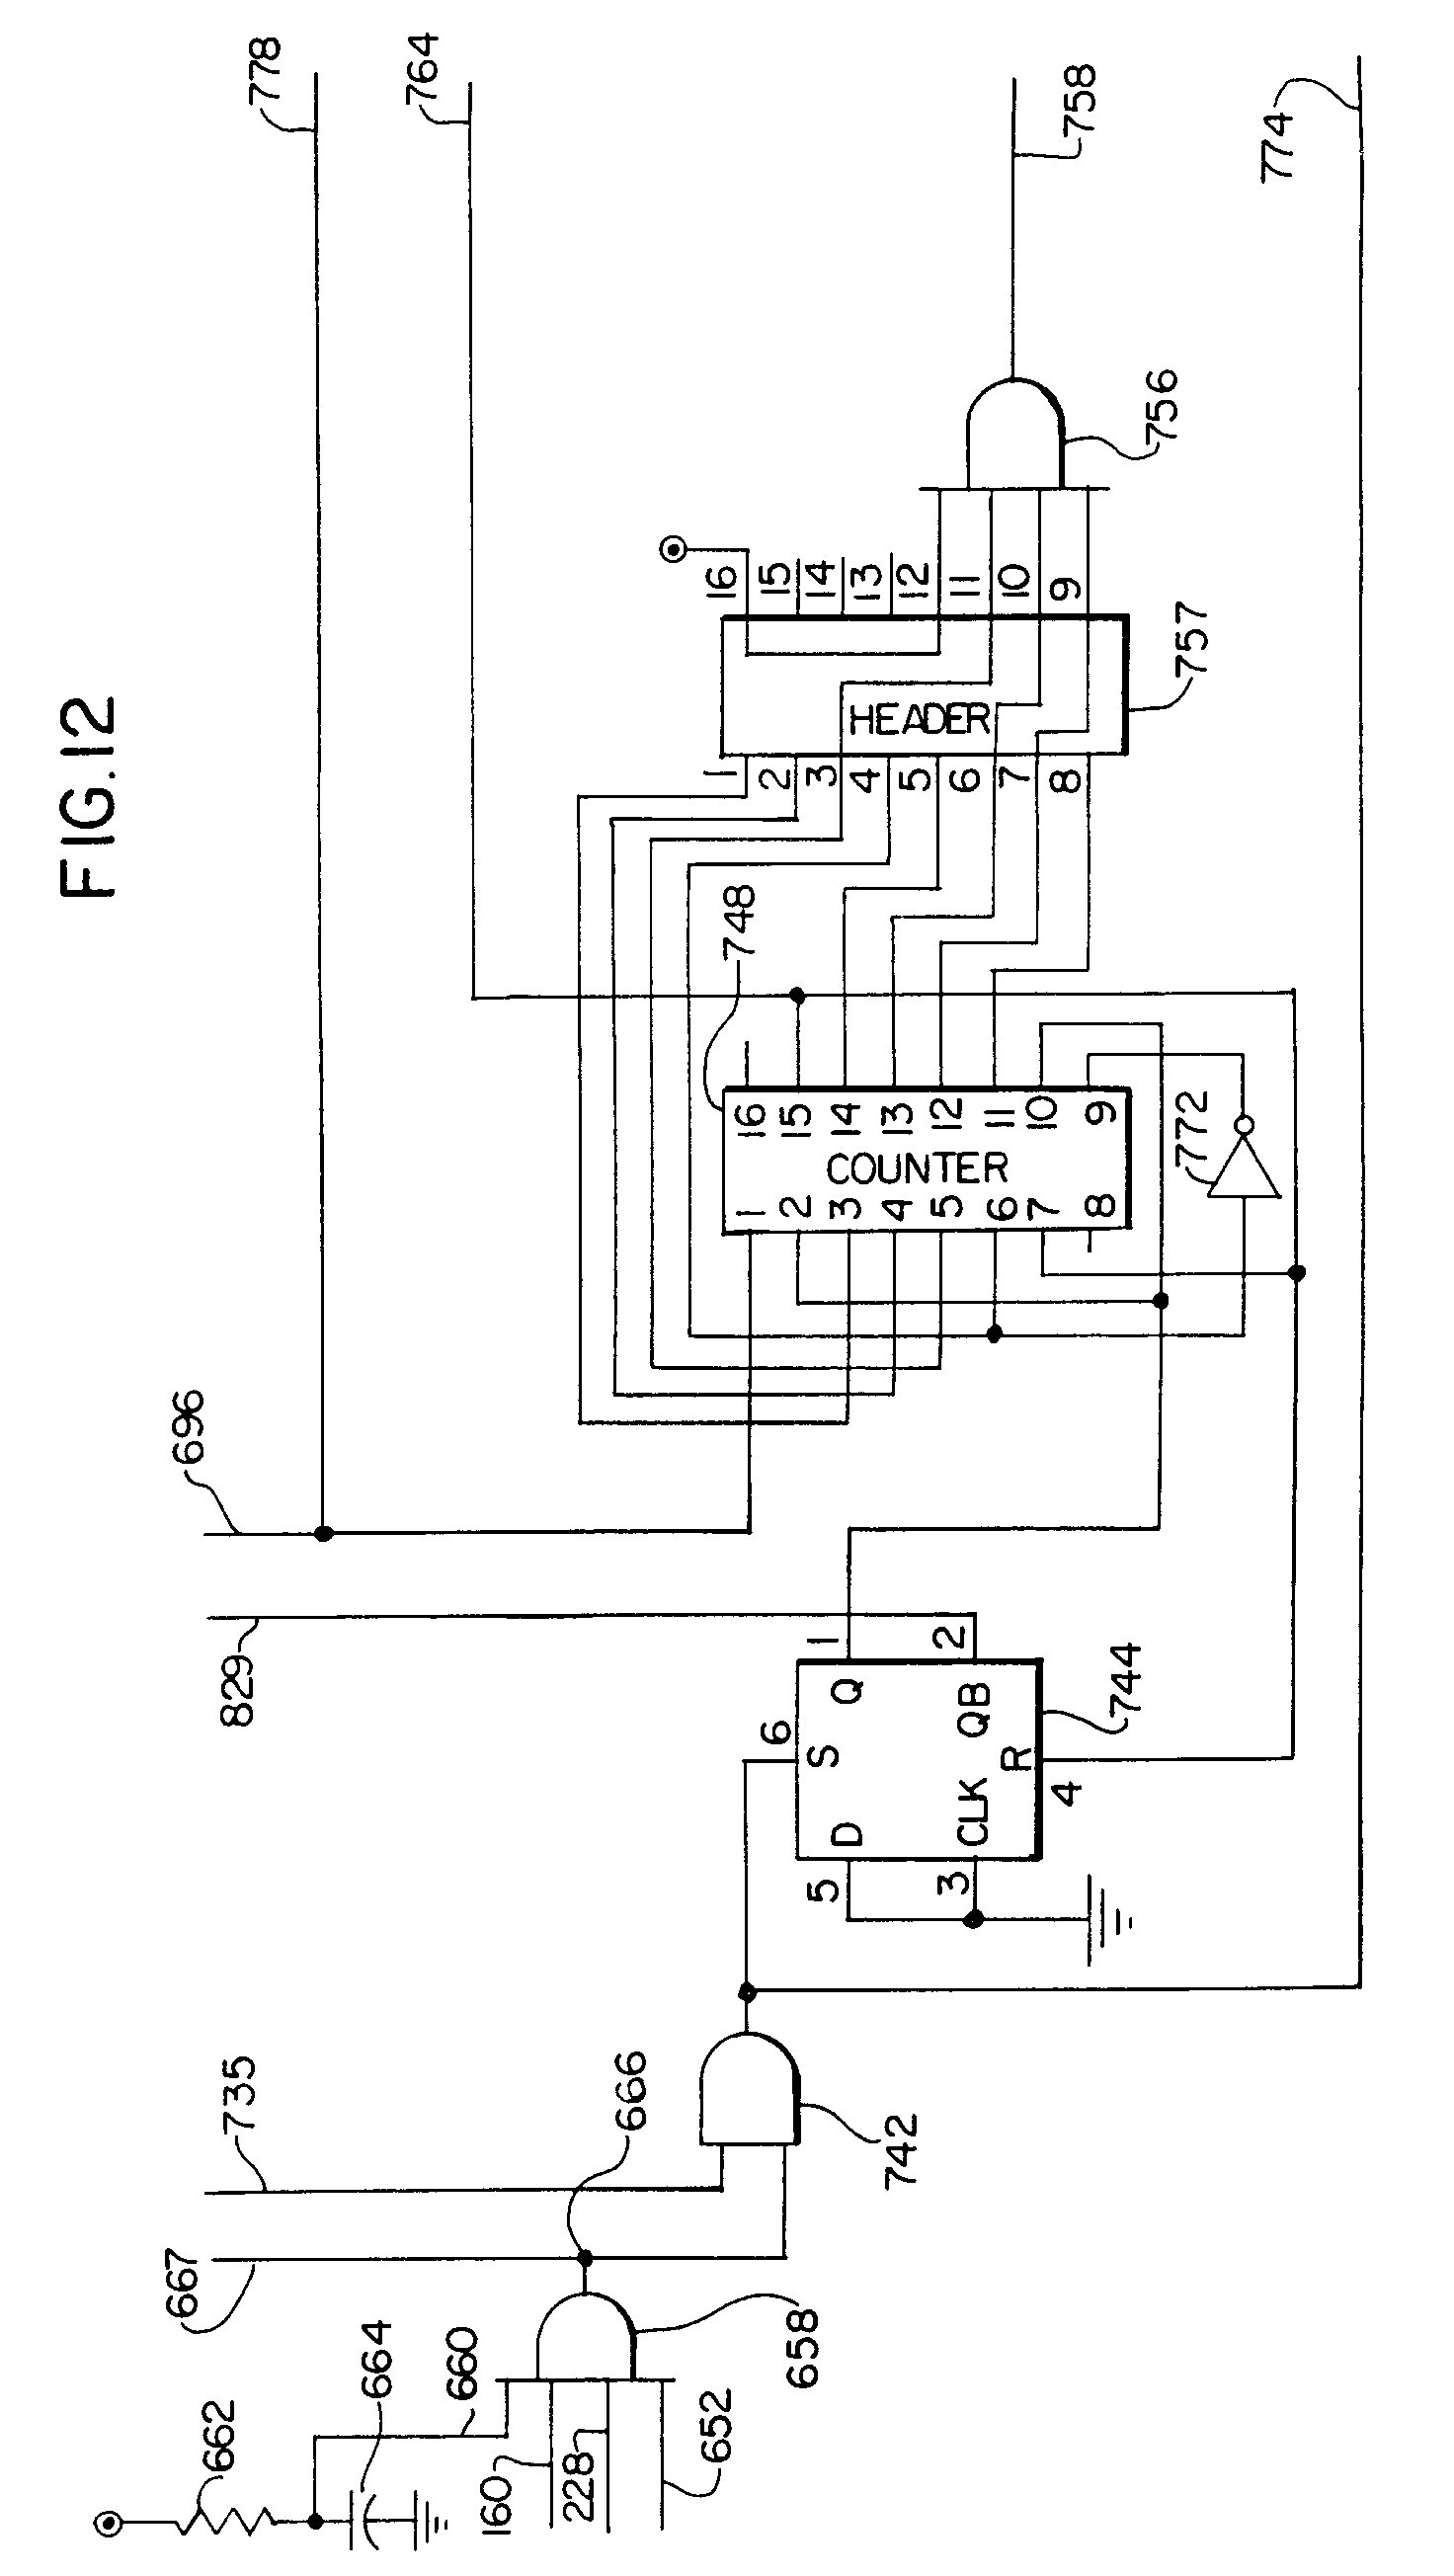 Edwards 592 Transformer Wiring Diagram - Wiring Diagram Host on three-phase transformer diagrams, led circuit diagrams, transformer phase displacement diagrams, transformer types, transformer single line diagram, transformer formulas, transformer installation, transformer schematic diagram, transformer electrical, 3 phase motor control diagrams, ceiling fans diagrams, transformer connection diagrams, transformer hook up diagrams, transformer design diagrams, transformer fuse sizing, transformer winding diagrams, transformer vector diagrams, transformer blueprints, transformer equations, transformer grounding,